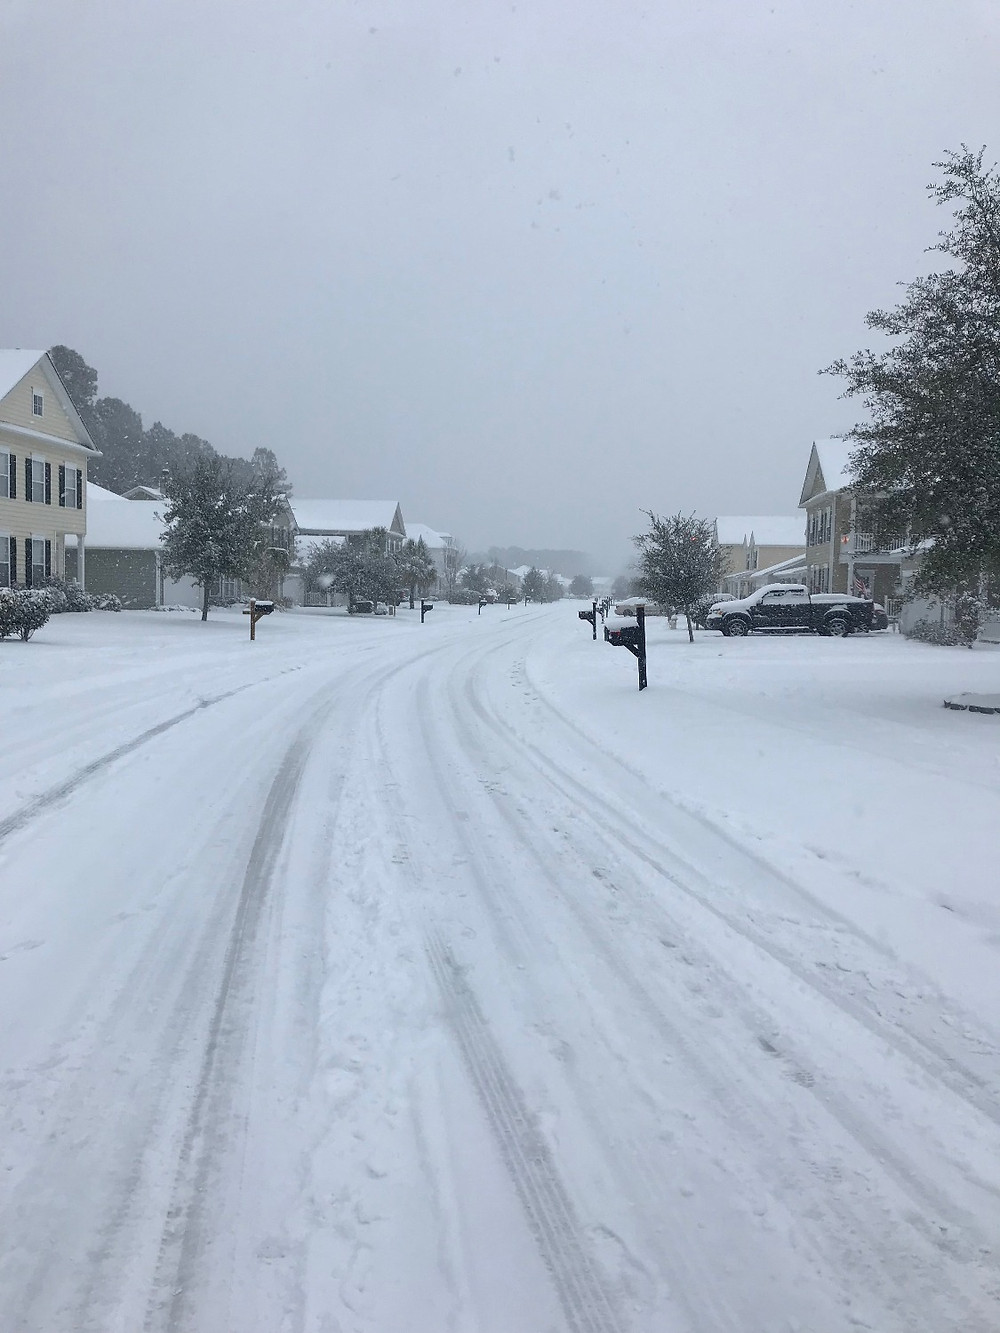 First snow in Winter 2018